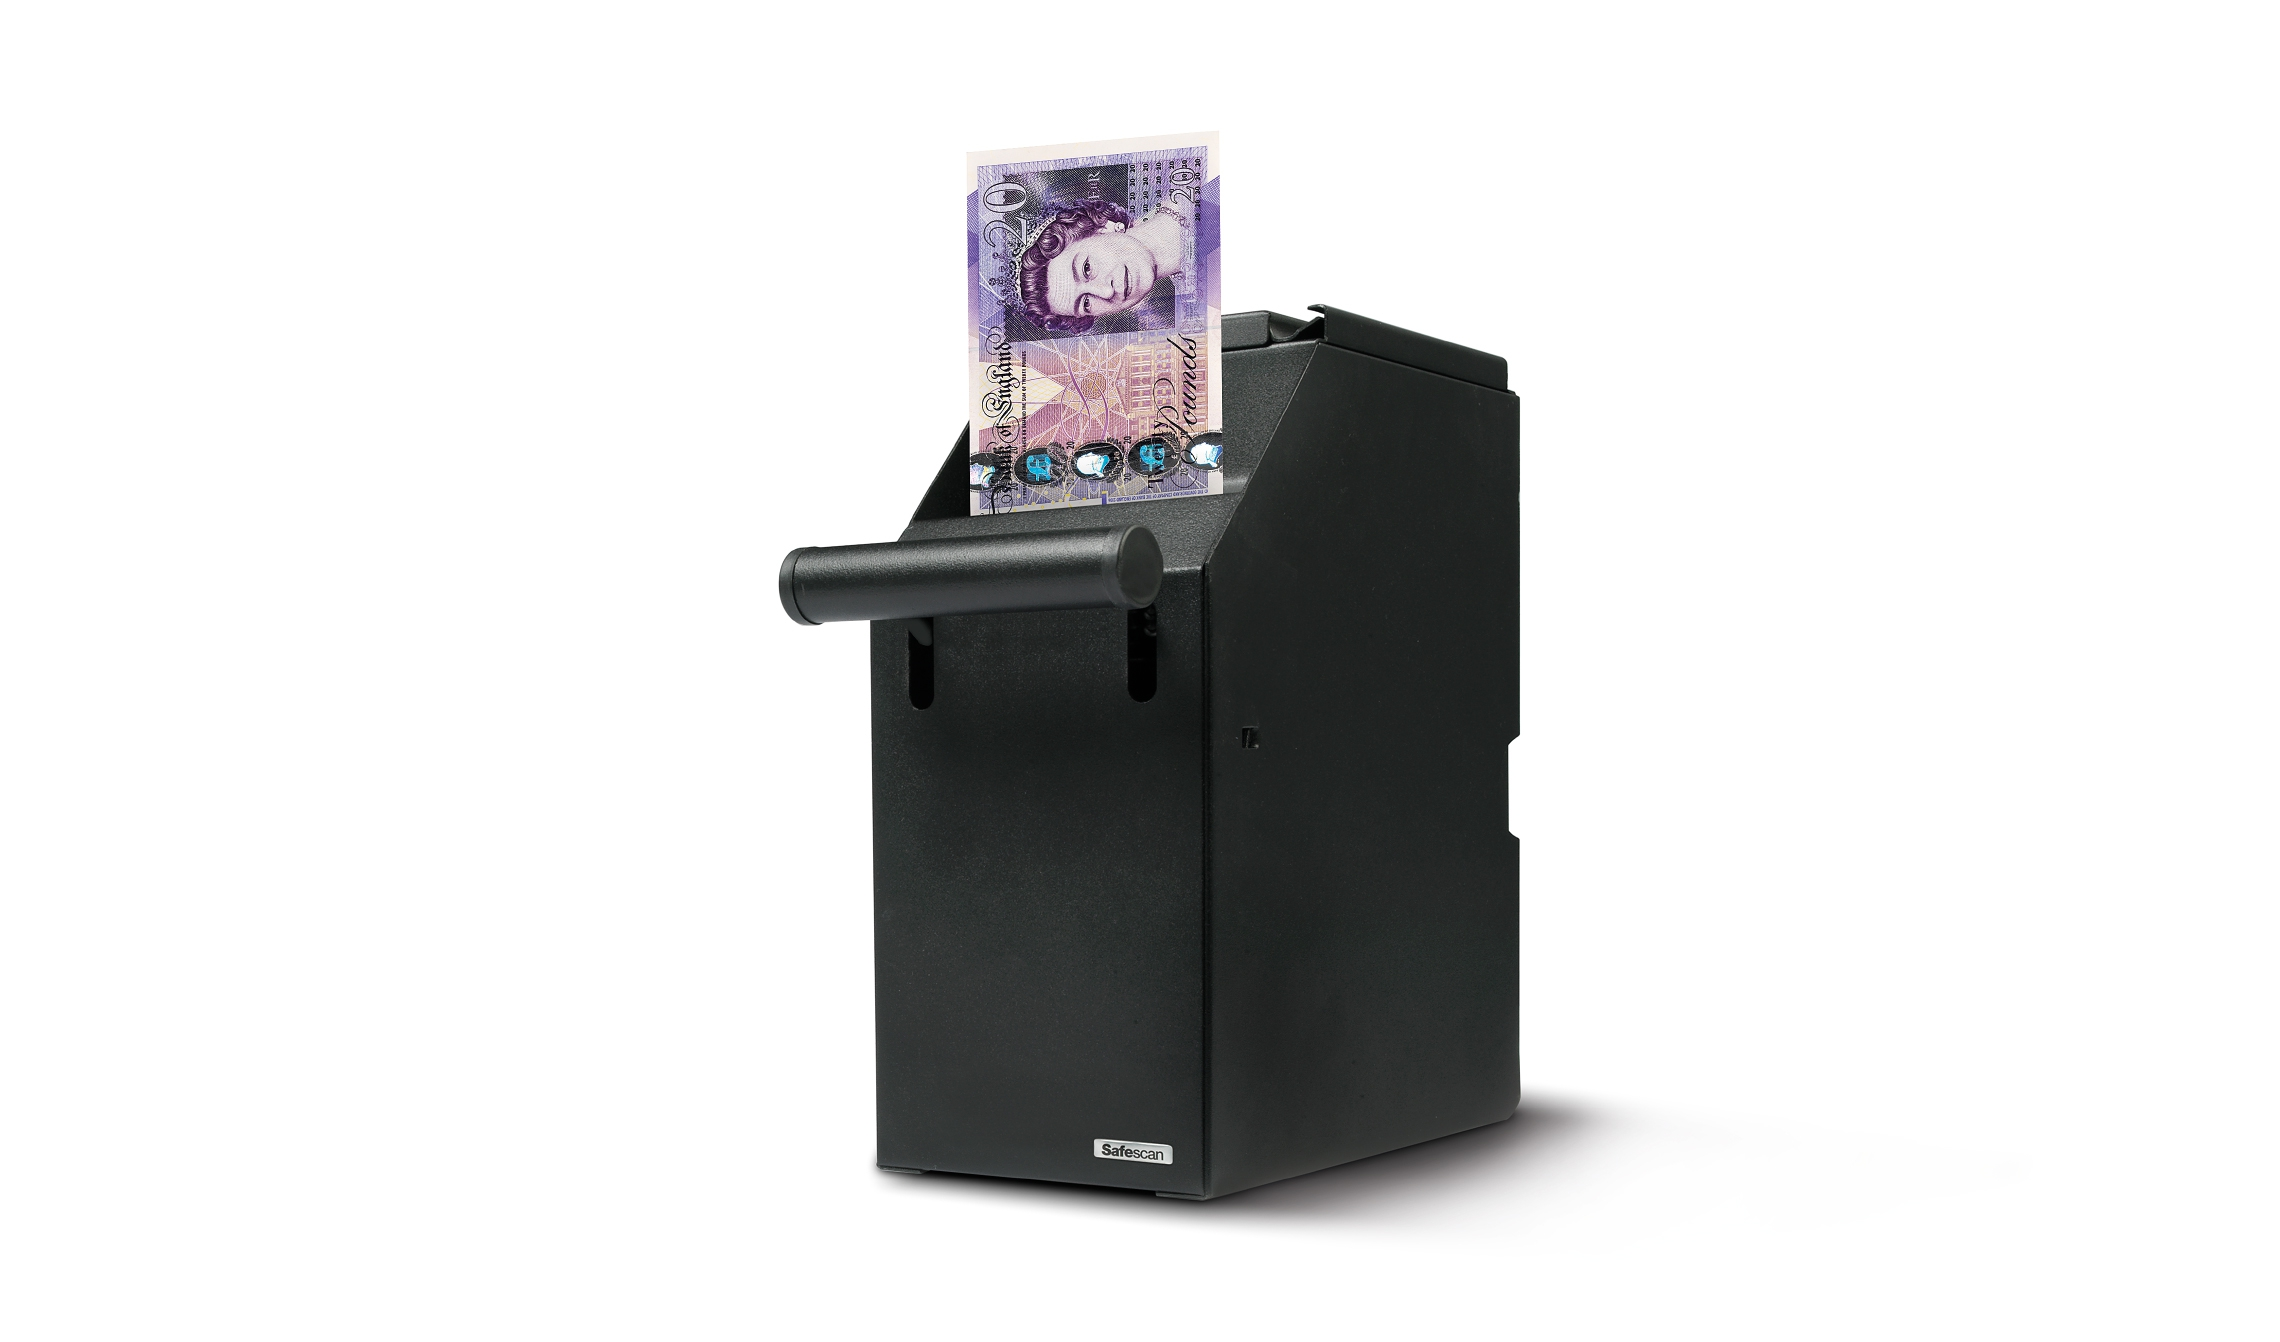 safescan-4100b-pos-safe